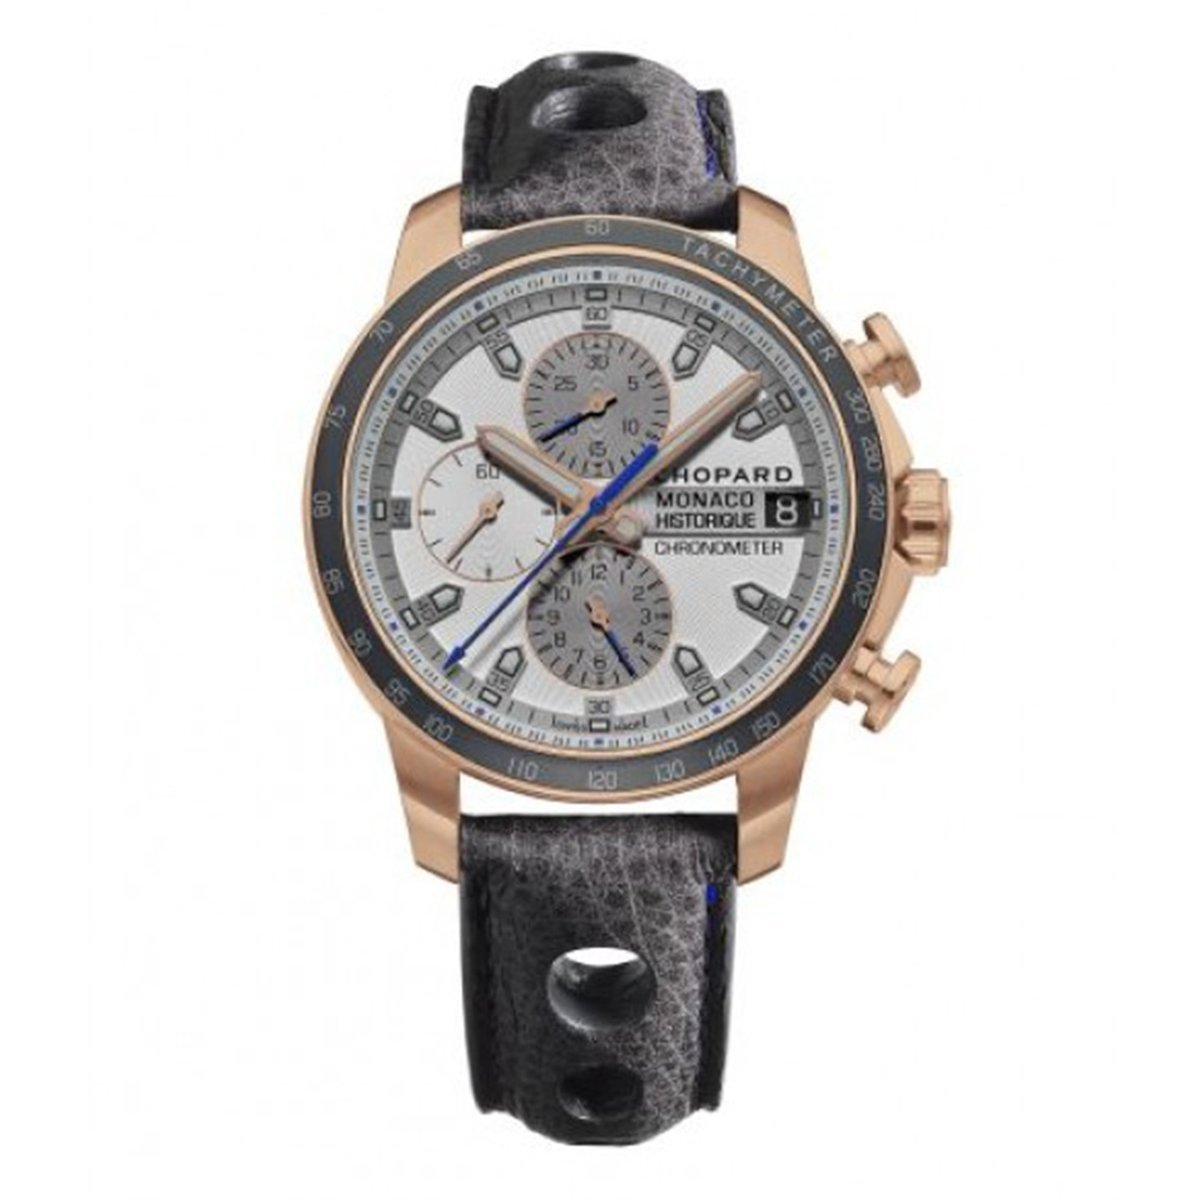 Chopard Grand Prix Monaco Historique Chronograph Men's Watch Rose Gold - Watches & Crystals